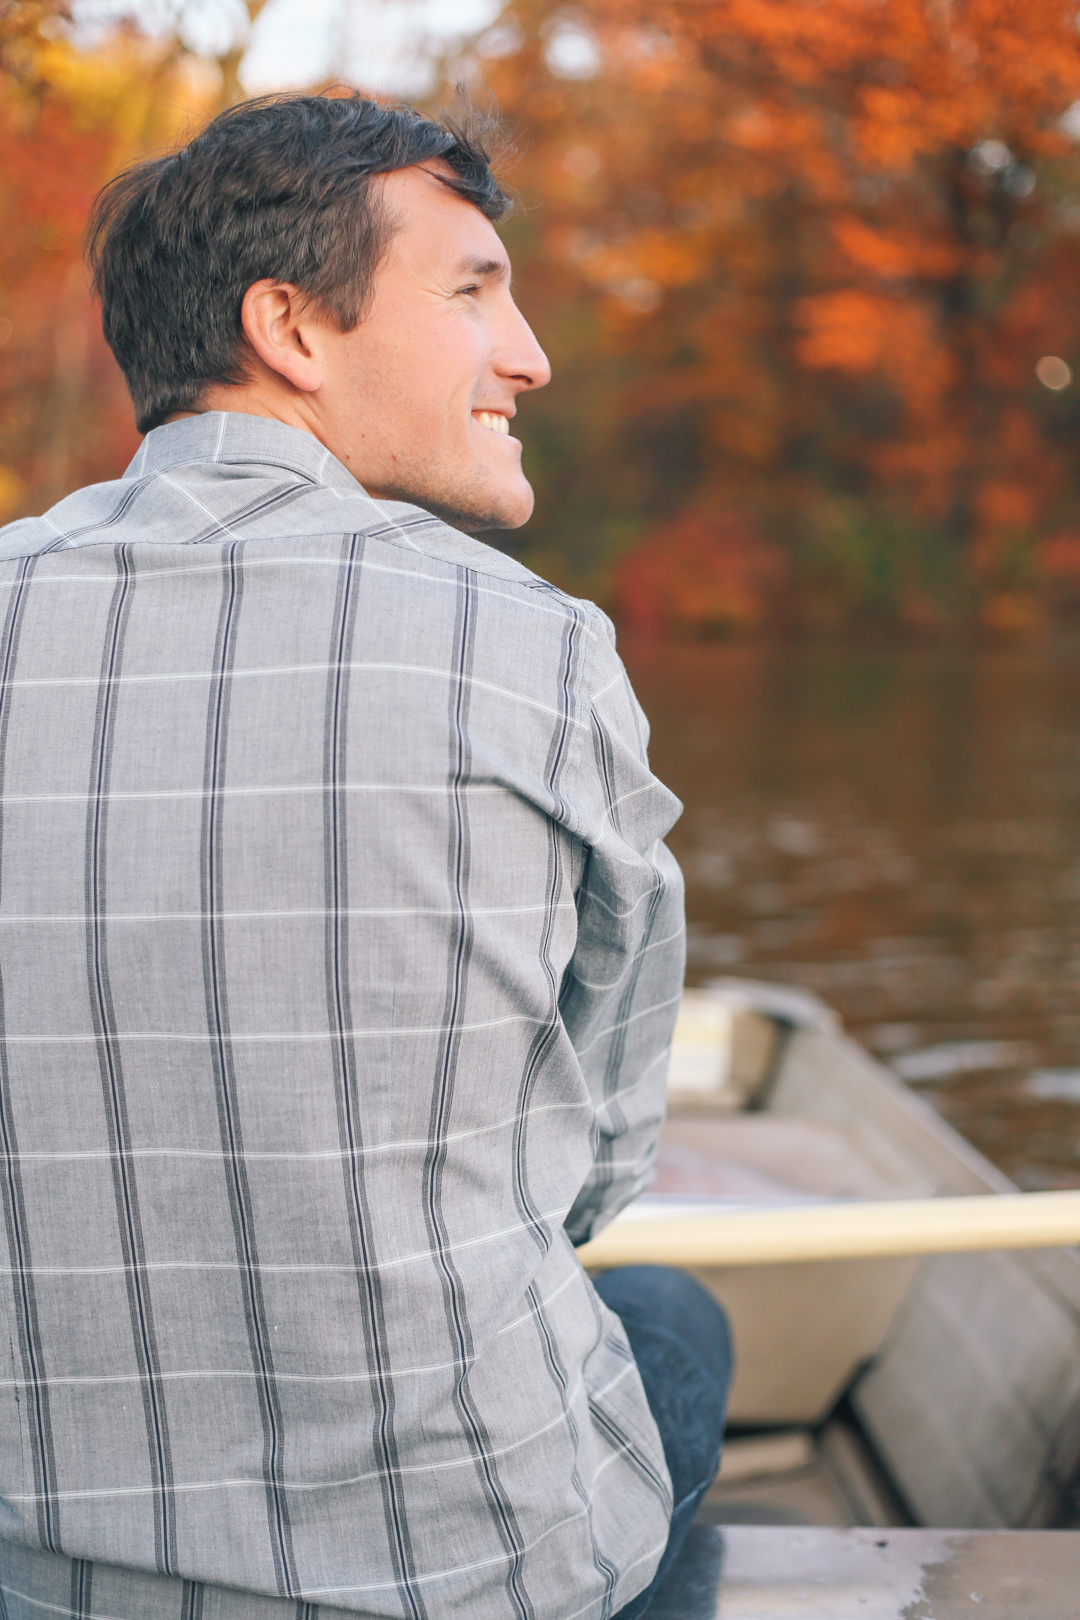 beyond-blessed-row-boats-in-central-park-54